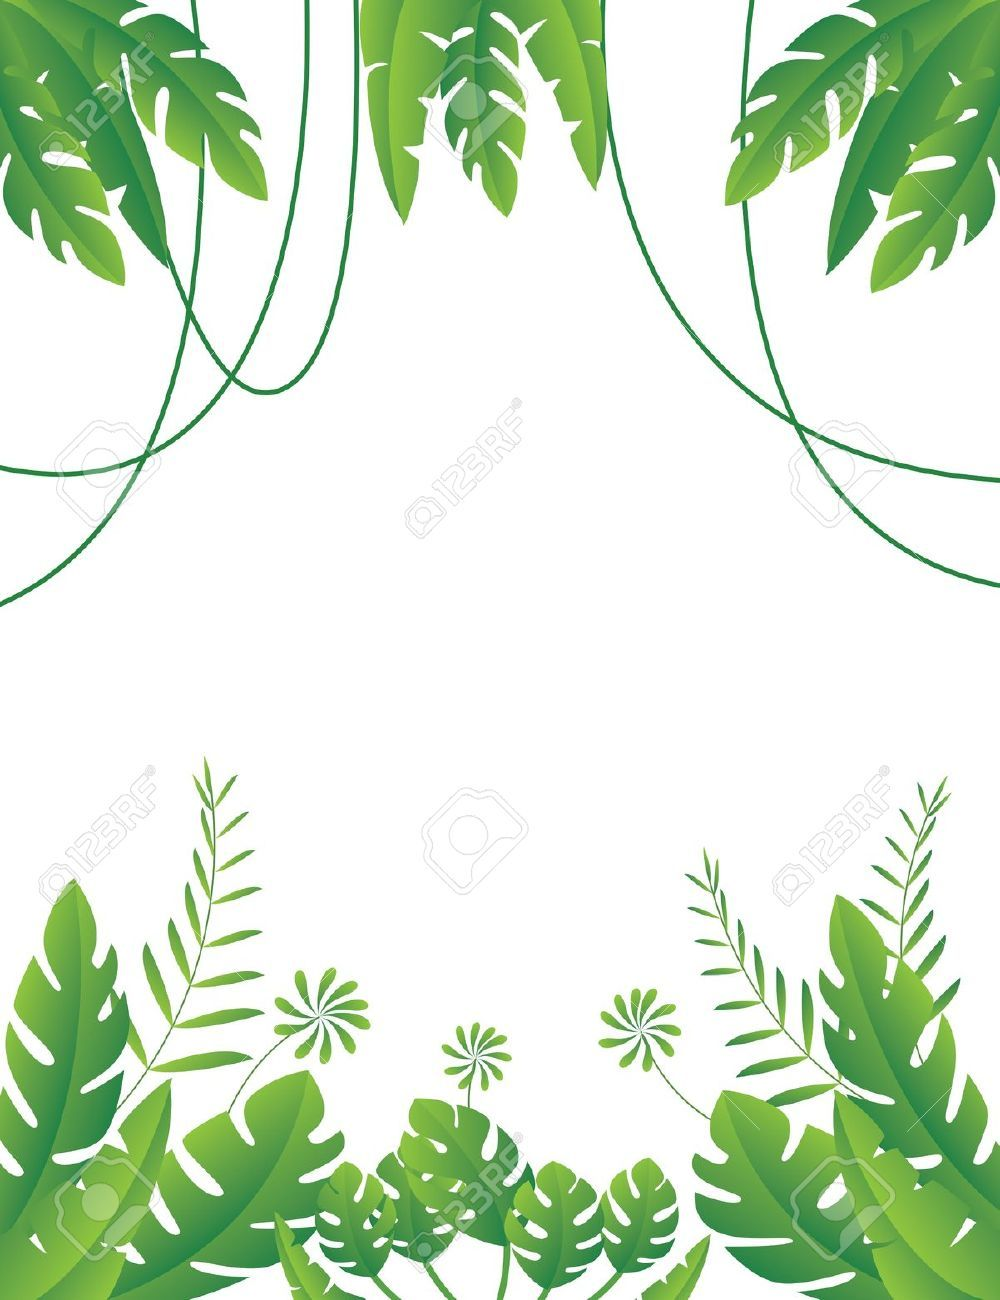 Jungle clipart jungle foliage 1 Jungle clipart, Plant